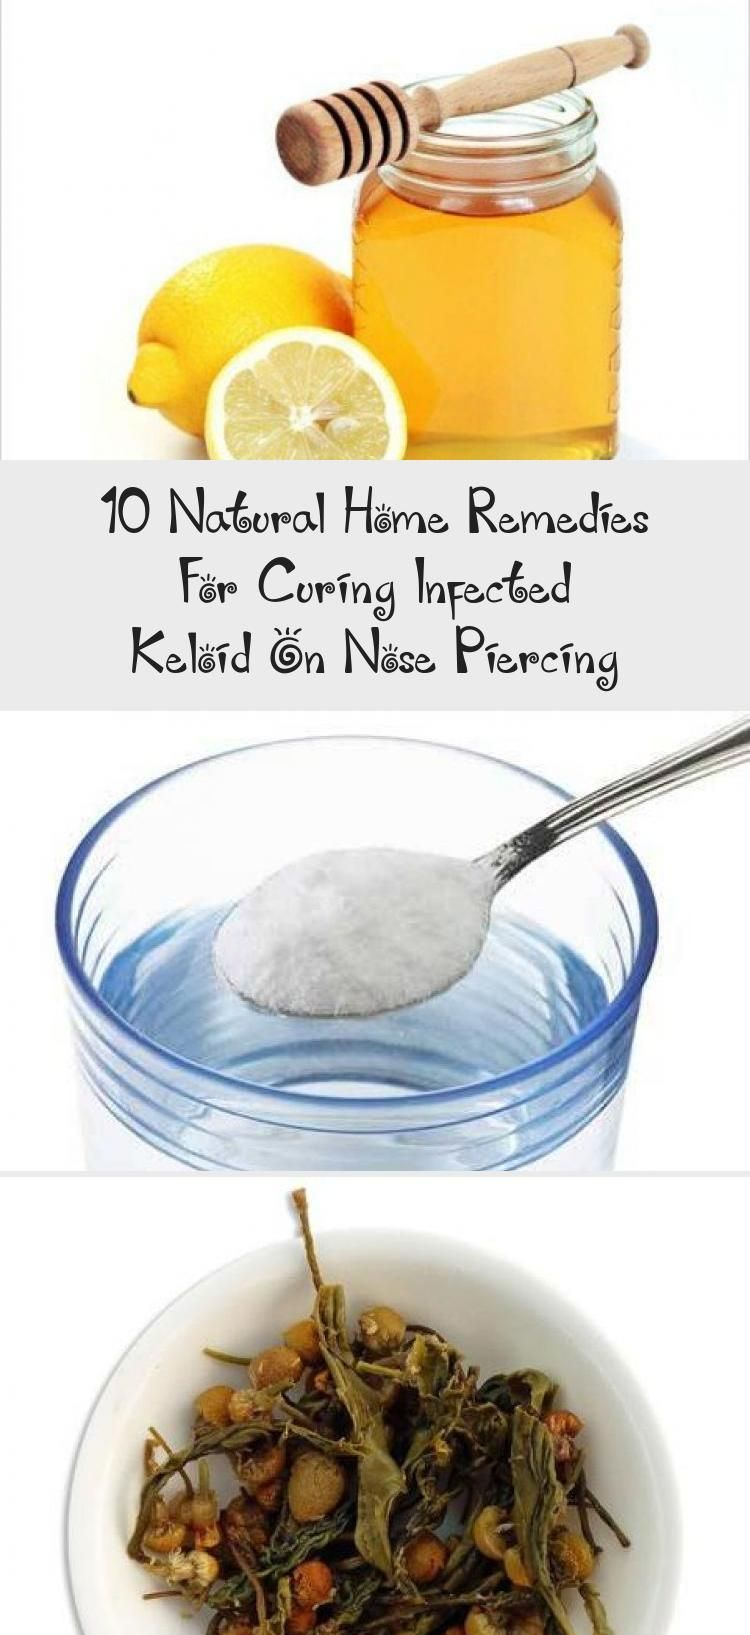 10 natural home remedies for curing infected keloid on